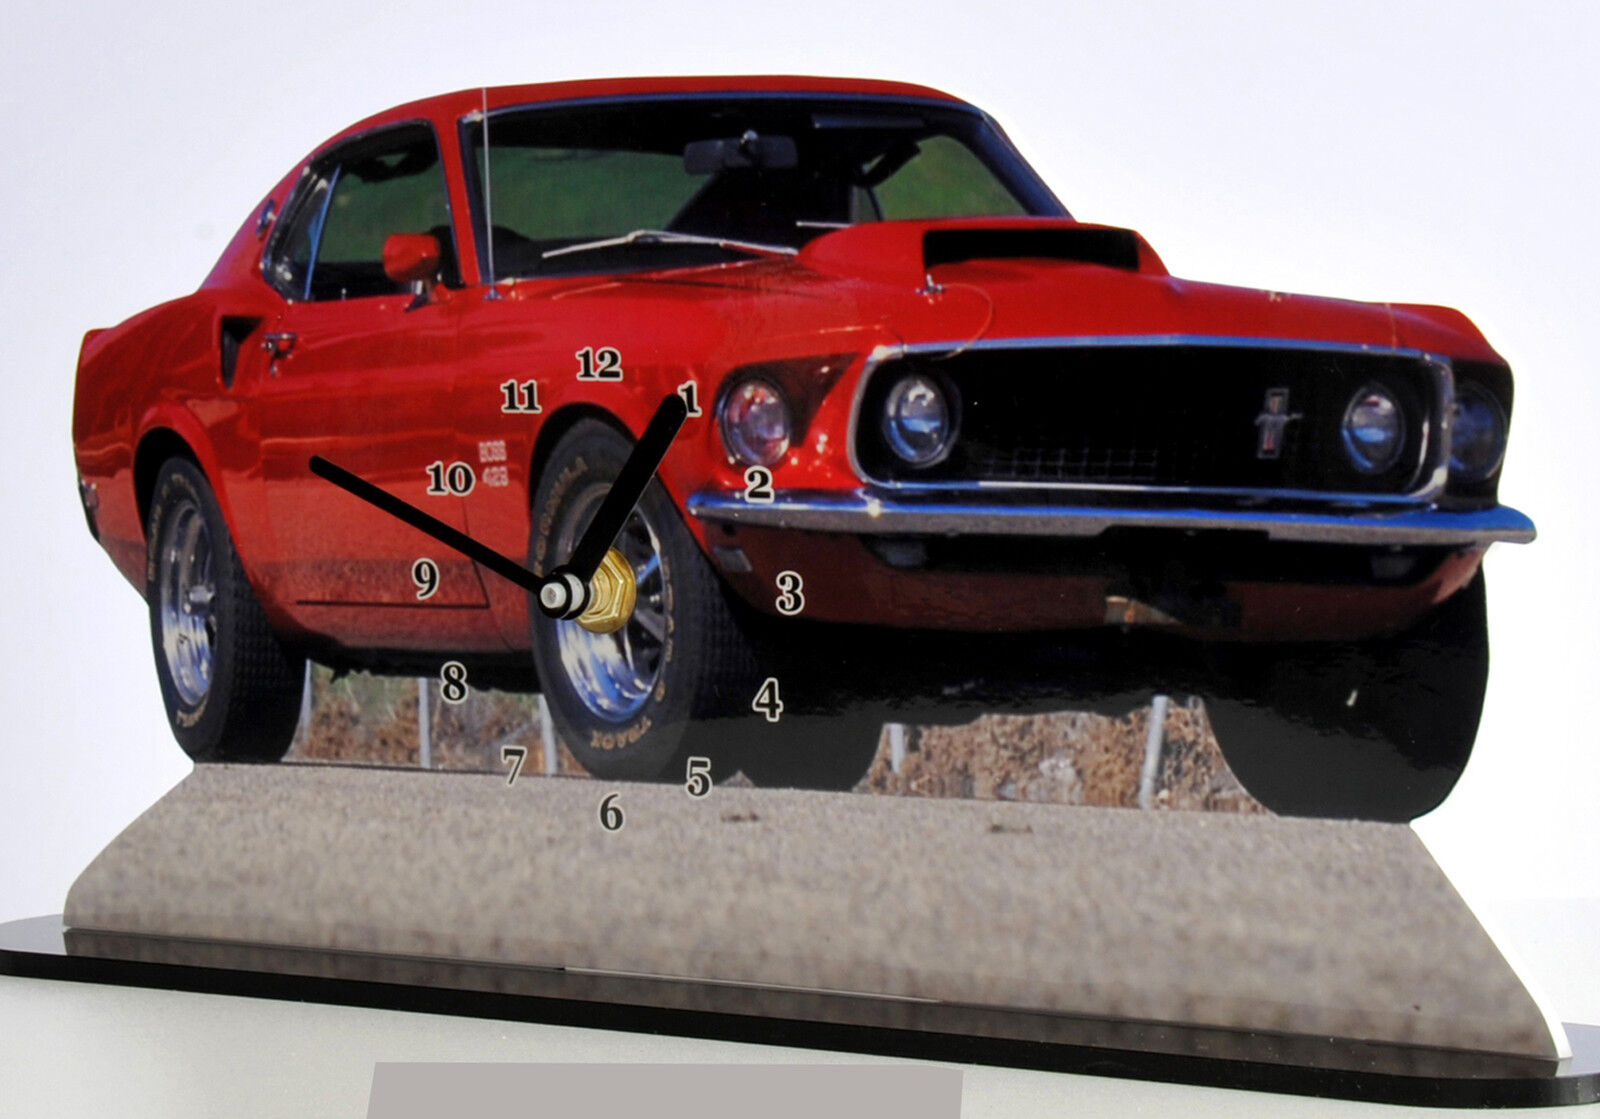 VEHICULE MINIATURE, FORD MUSTANG SHELBY red 03 en horloge